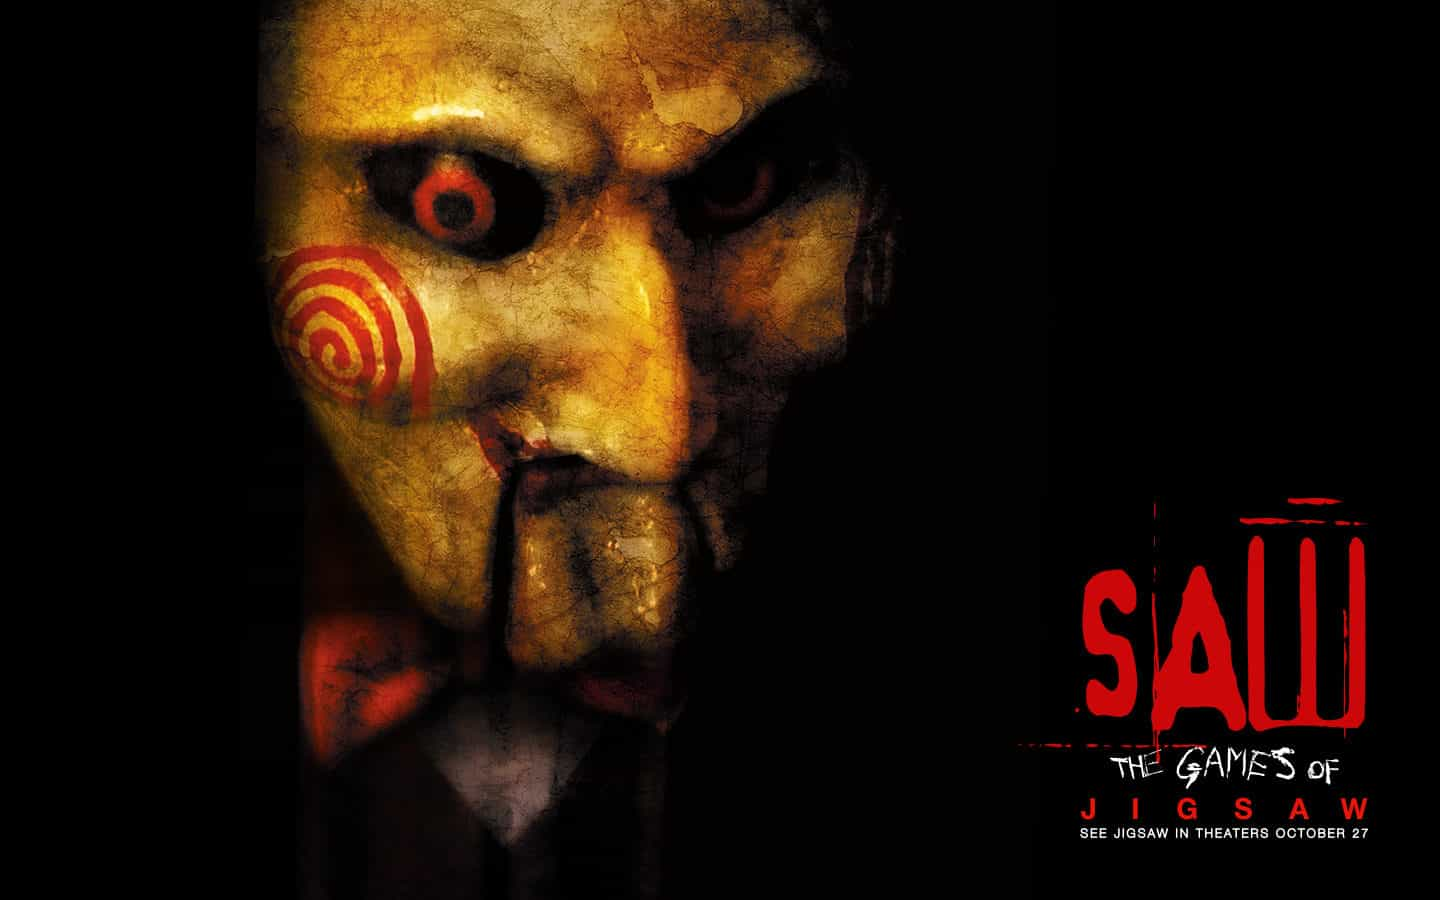 Jigsaw returns to Halloween Horror Nights with all-new Saw maze in ...